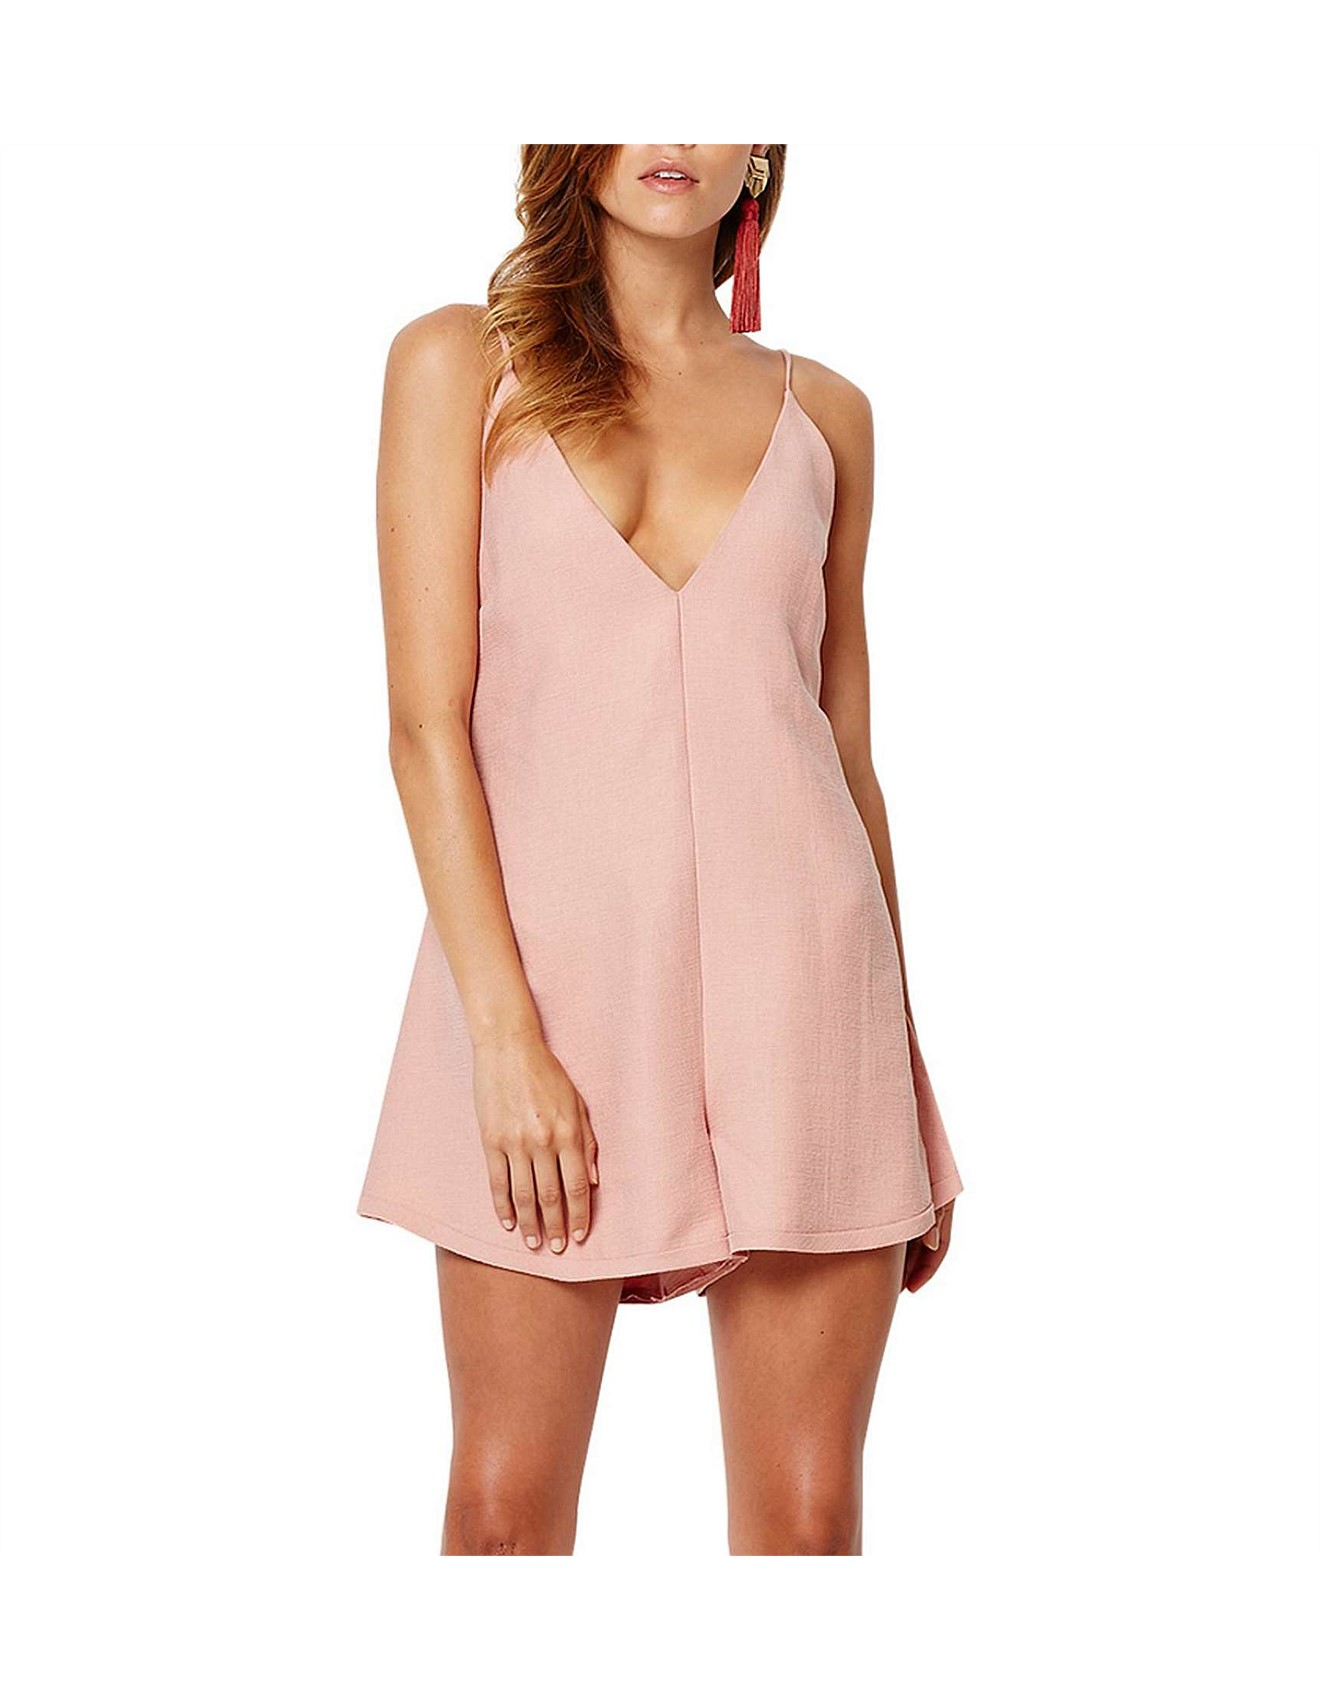 a1c7b40eac5 Lady Lou Playsuit Special Offer. 1